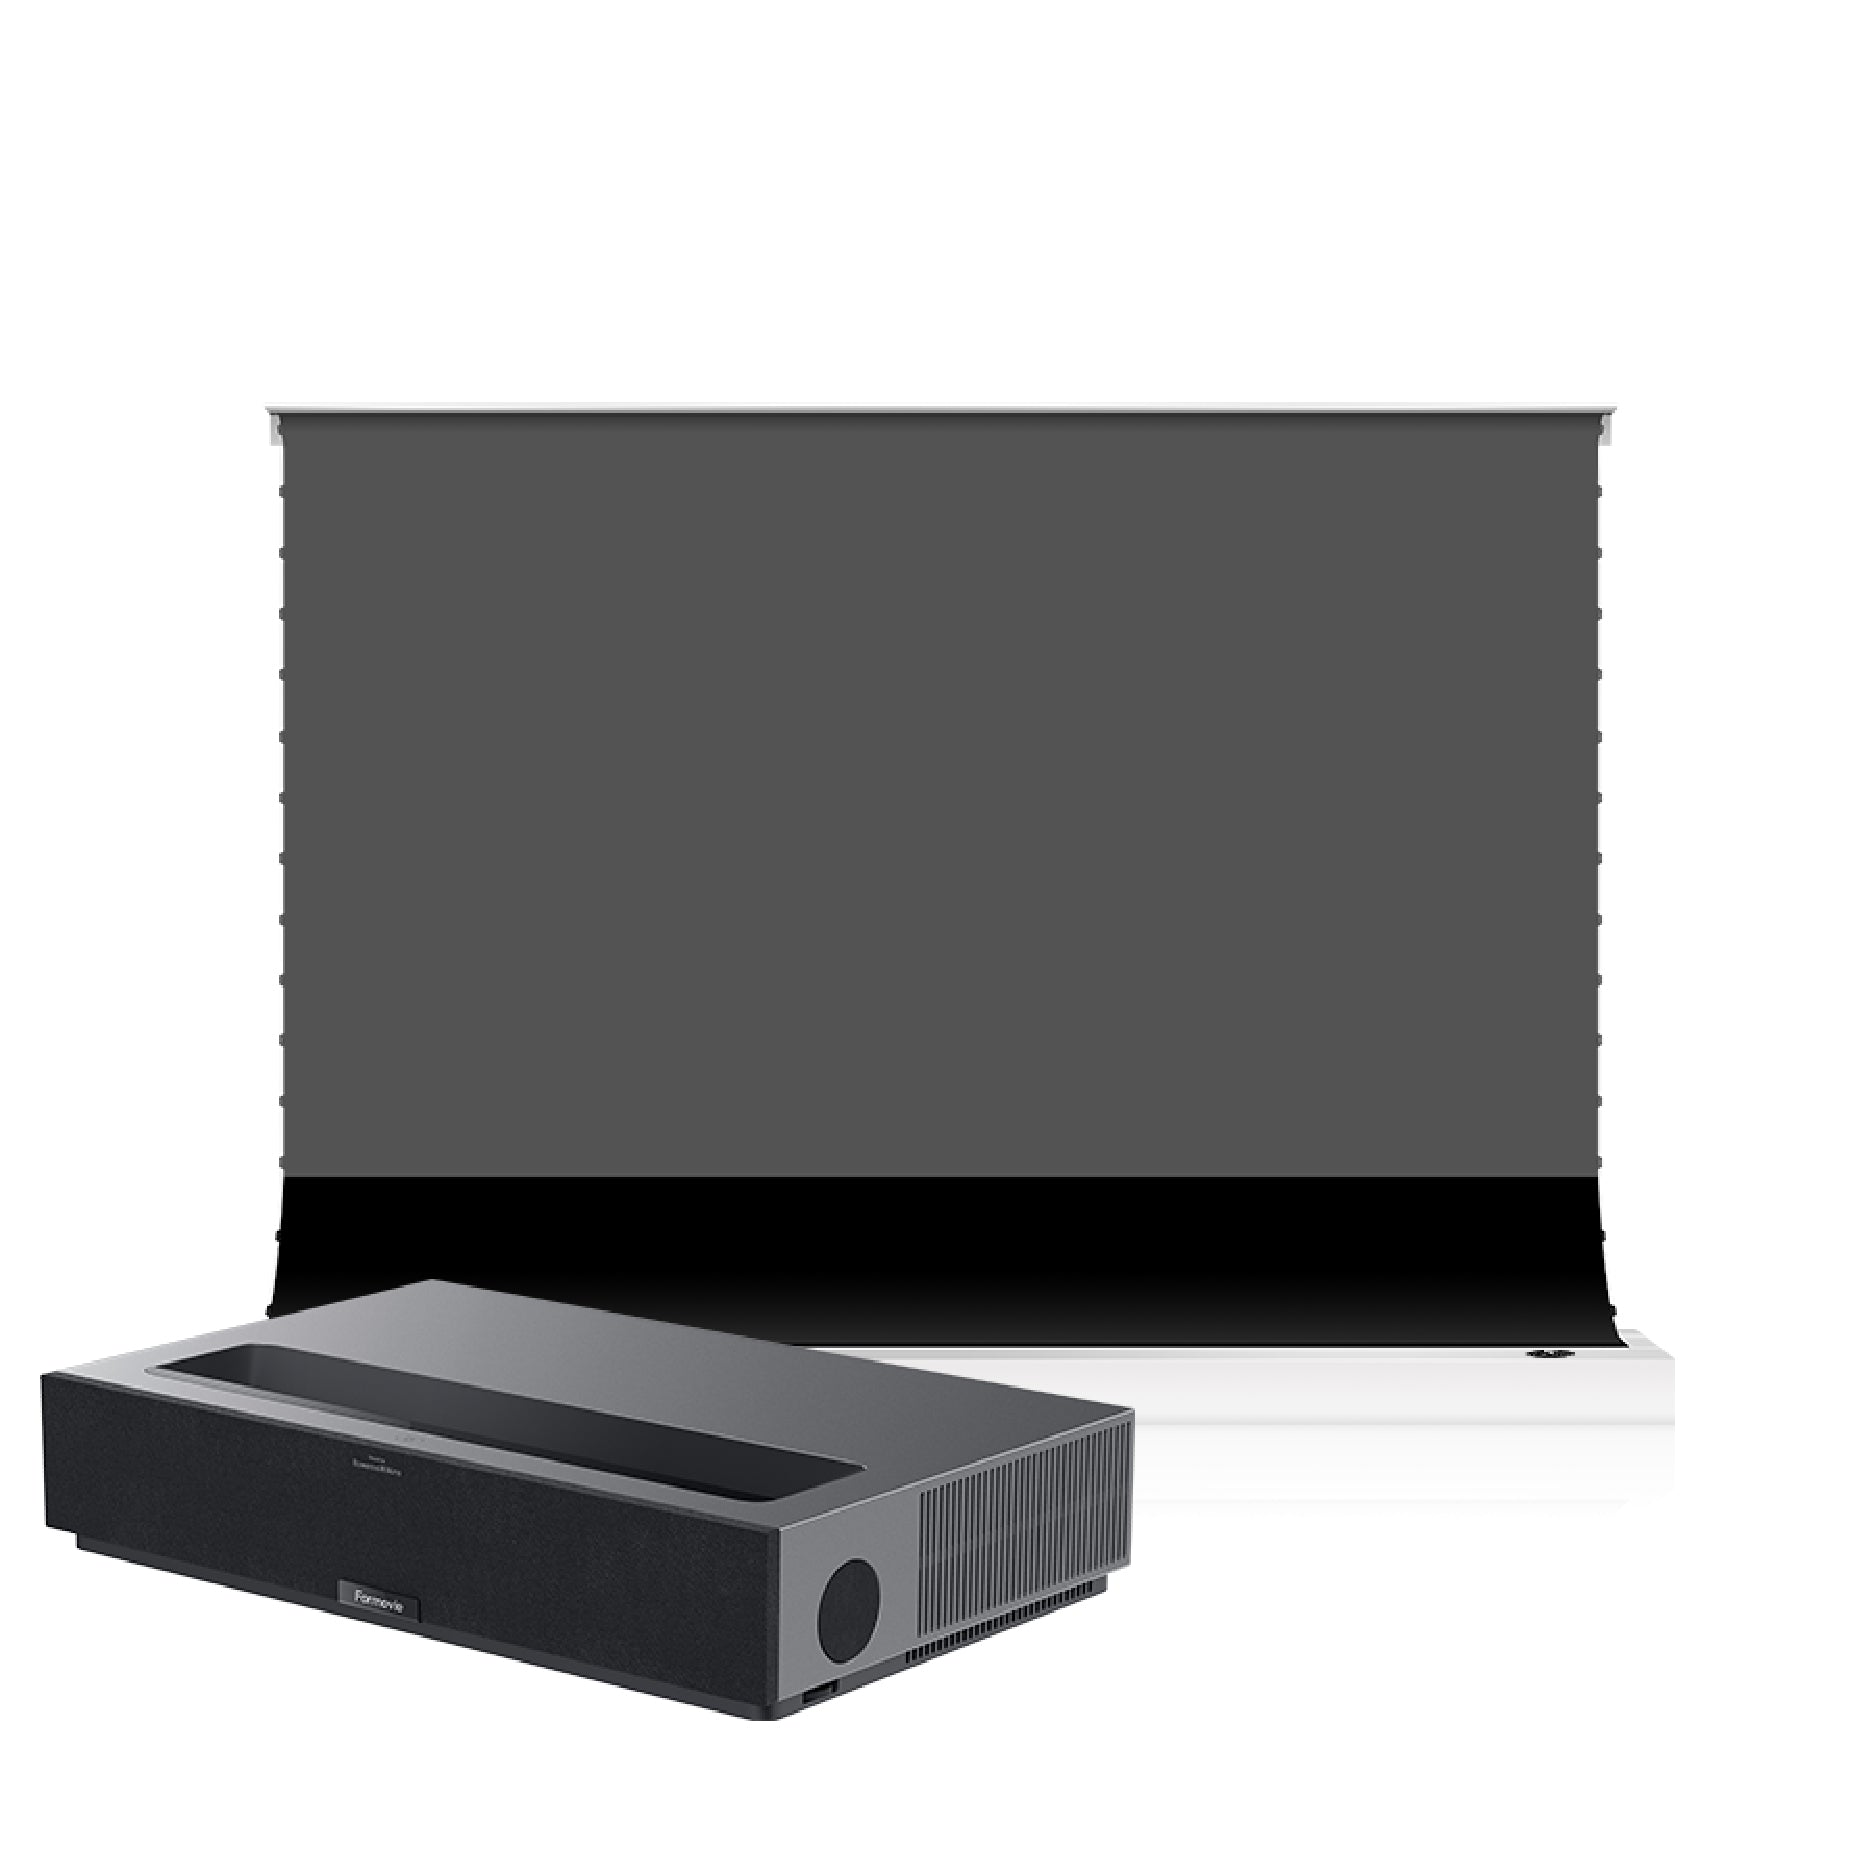 S PRO P Electric Tension Floor Screen With Ultra short Throw Ambient Light Rejecting  【For UST Laser Projector】(Sound Perforated Acoustic Transparent)